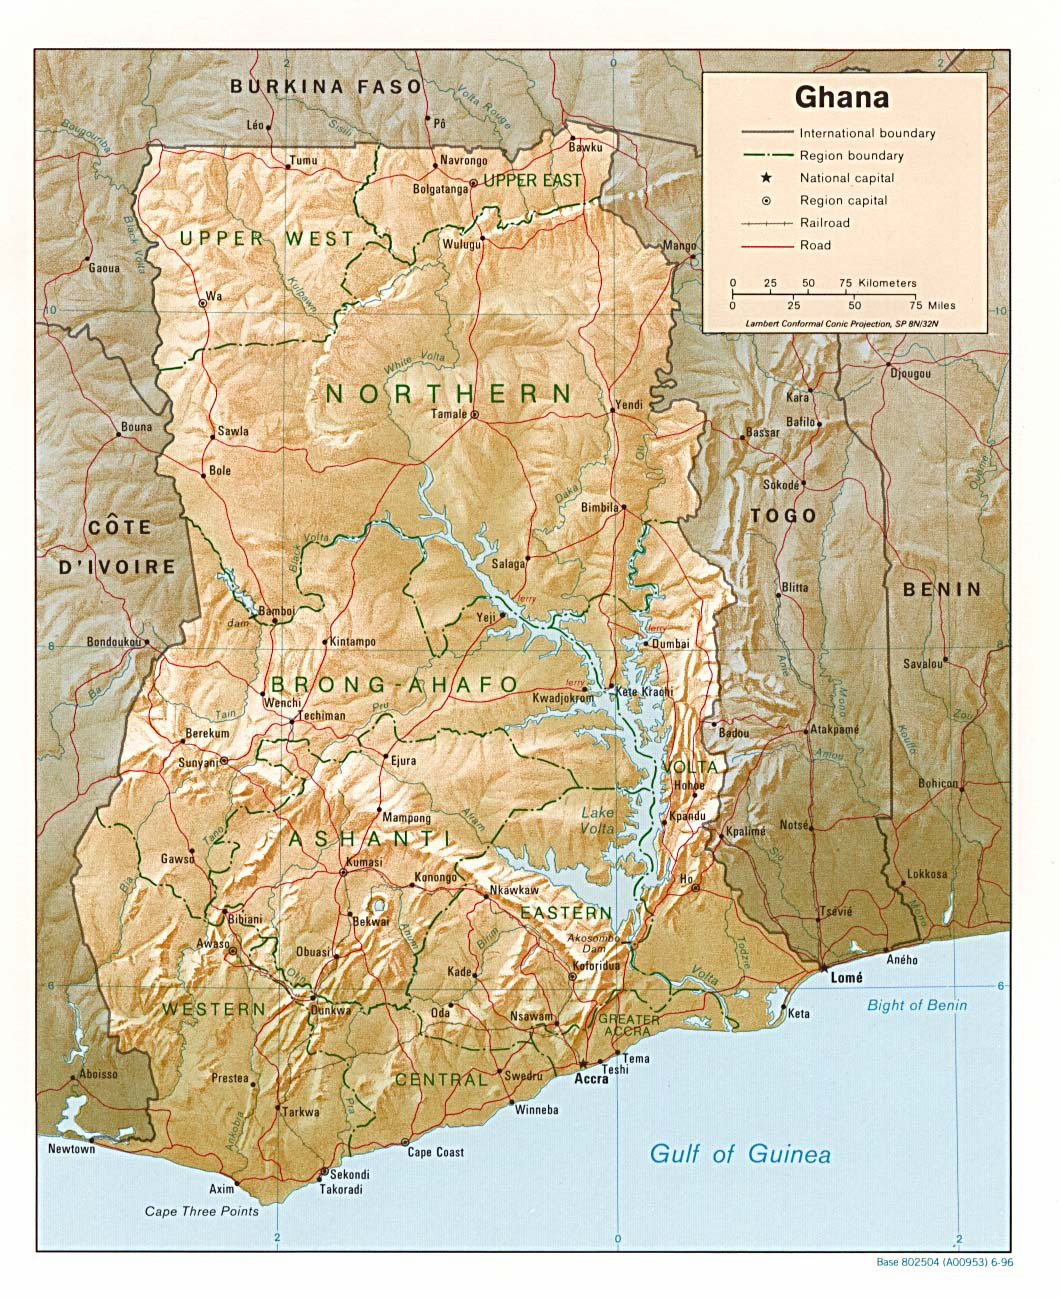 Detailed relief and political map of Ghana Ghana detailed relief